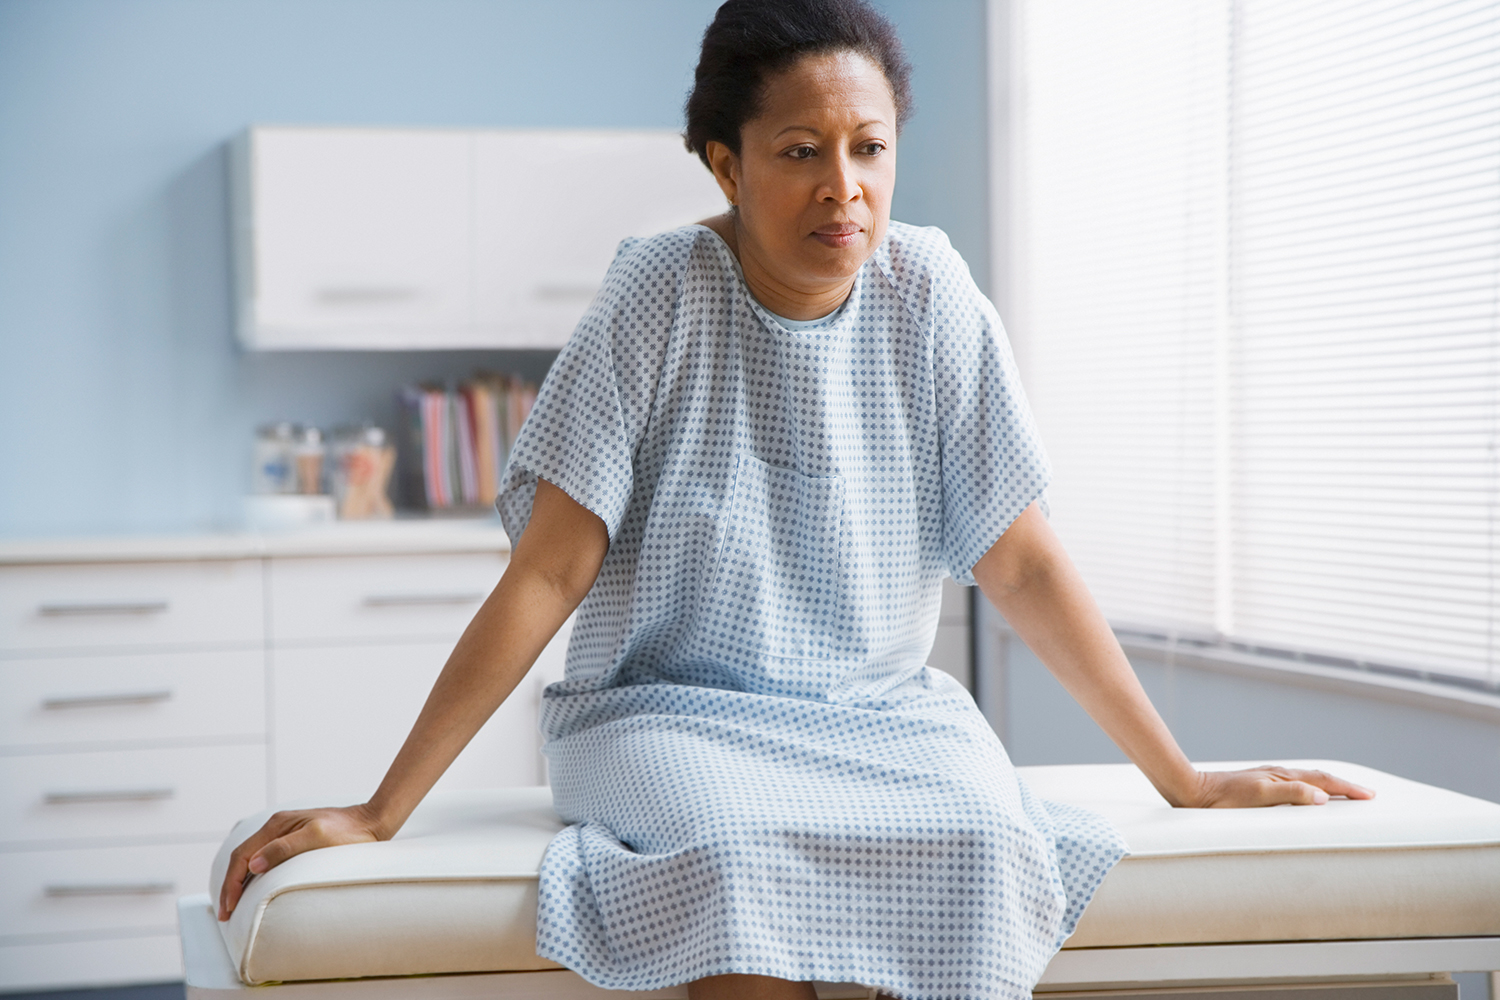 ovarian-cancer-tests-not-reliable-fda-warns